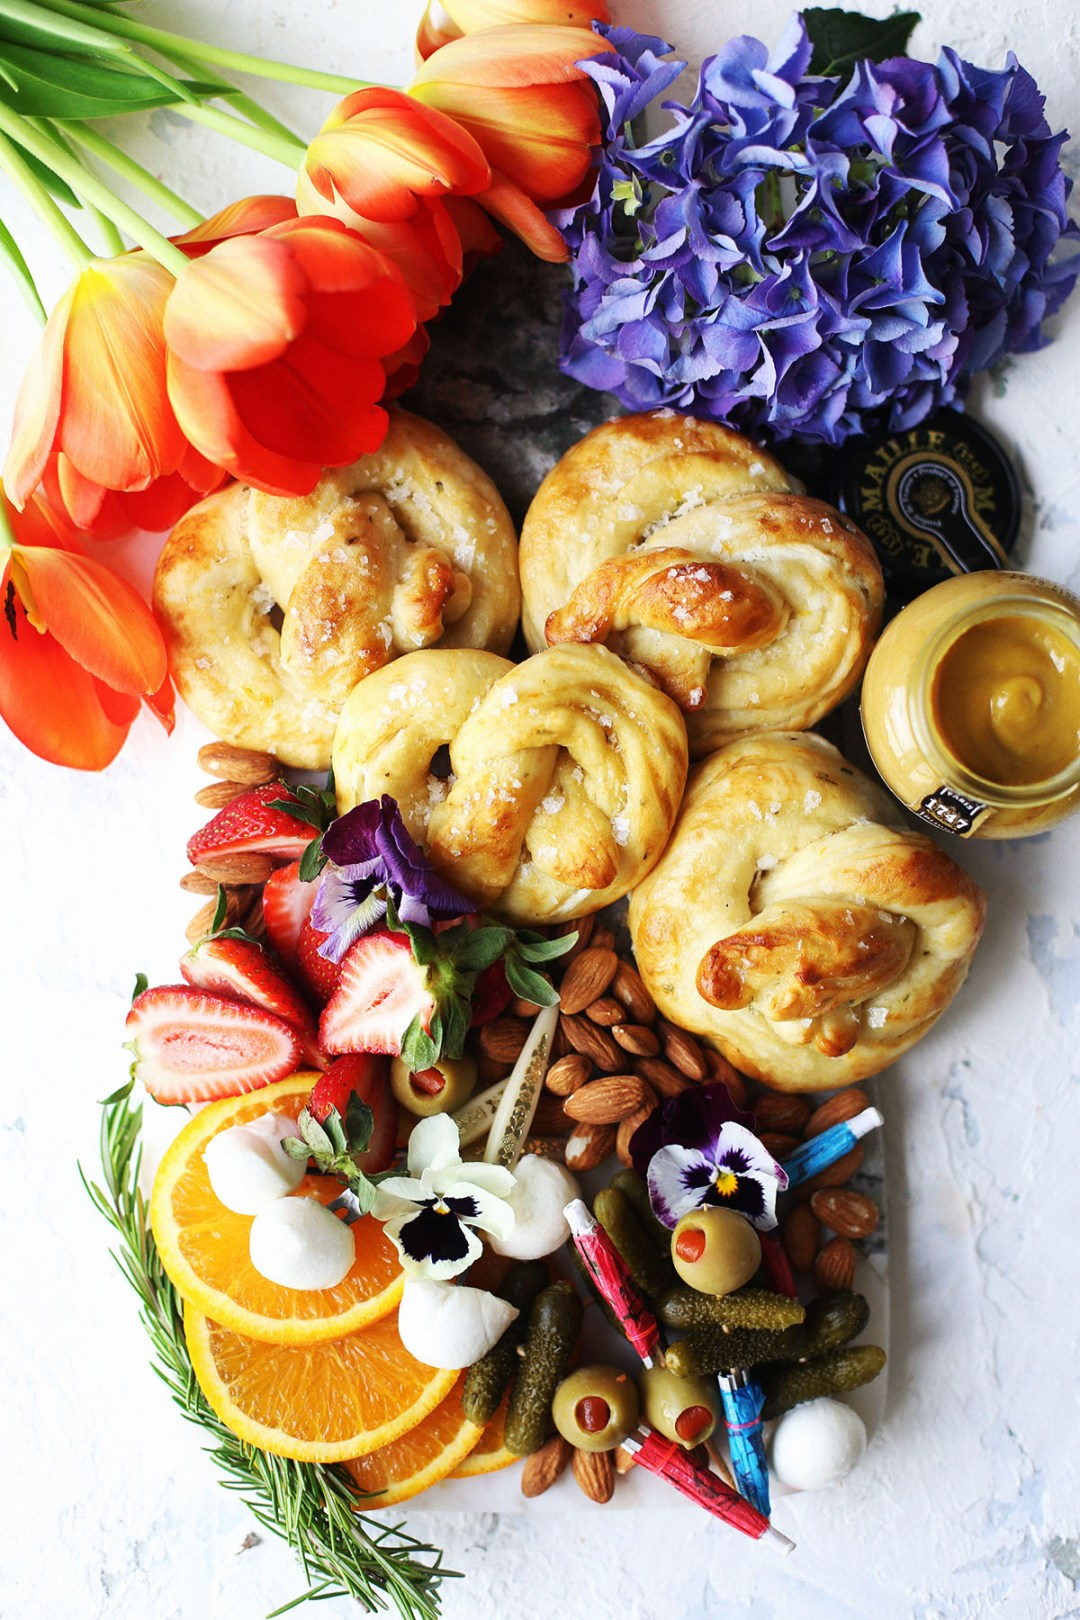 Rosemary Orange and Goat Cheese Stuffed Soft Pretzels